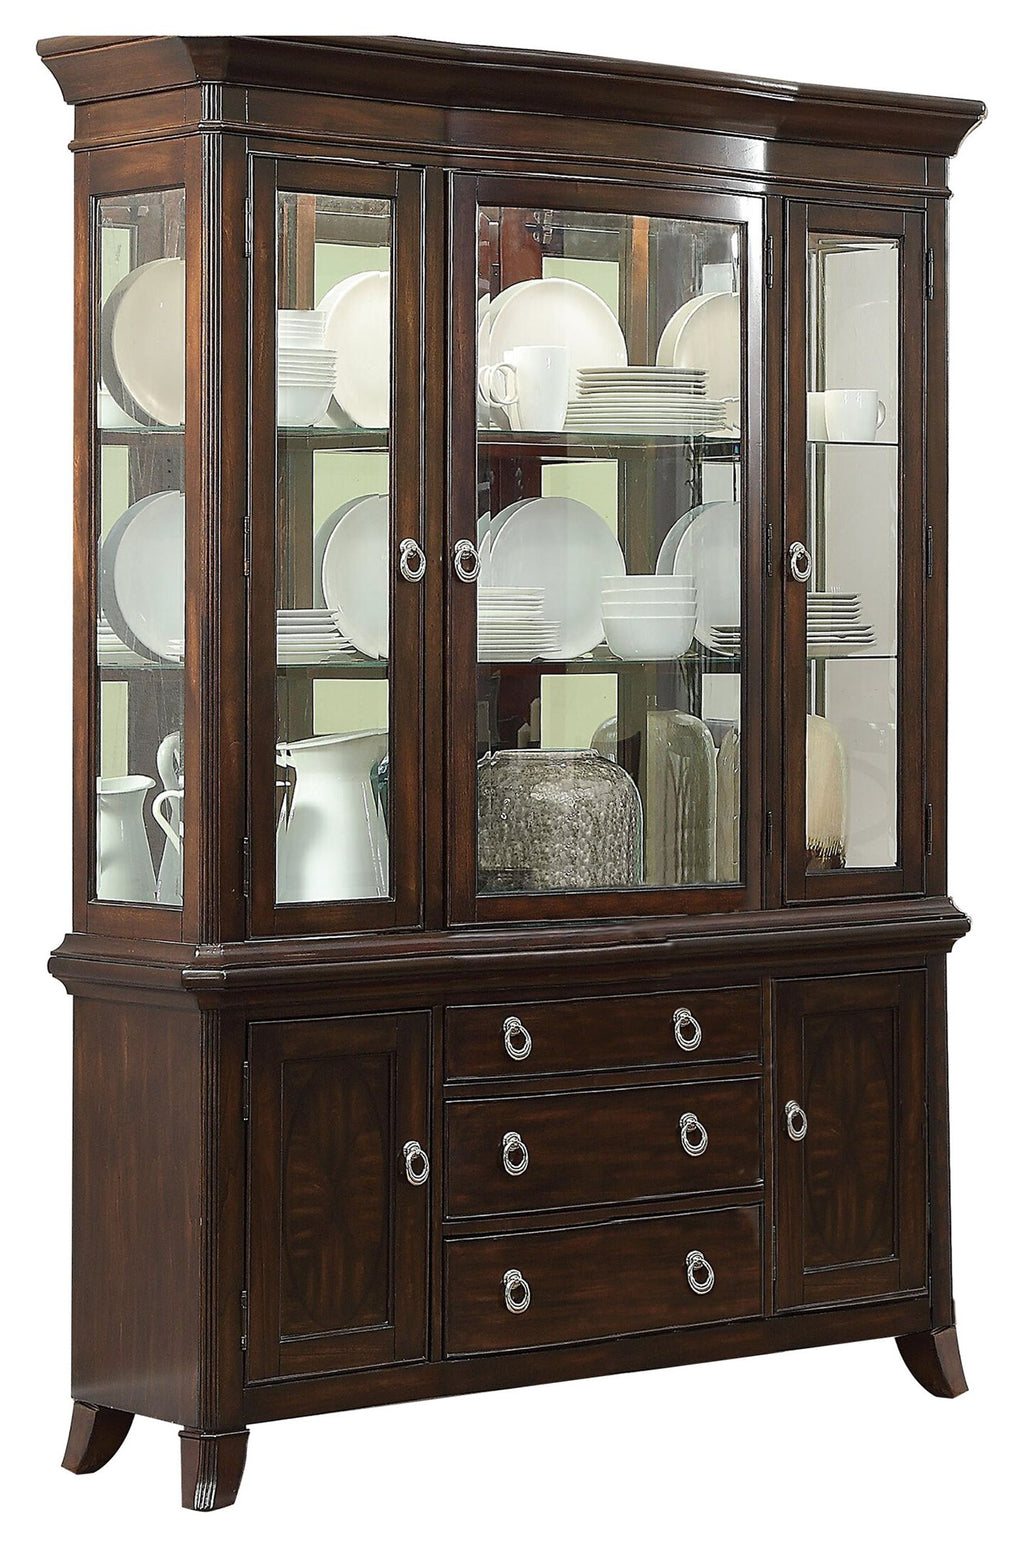 Homelegance Keegan Asian Buffet & Hutch in Rich Brown Cherry